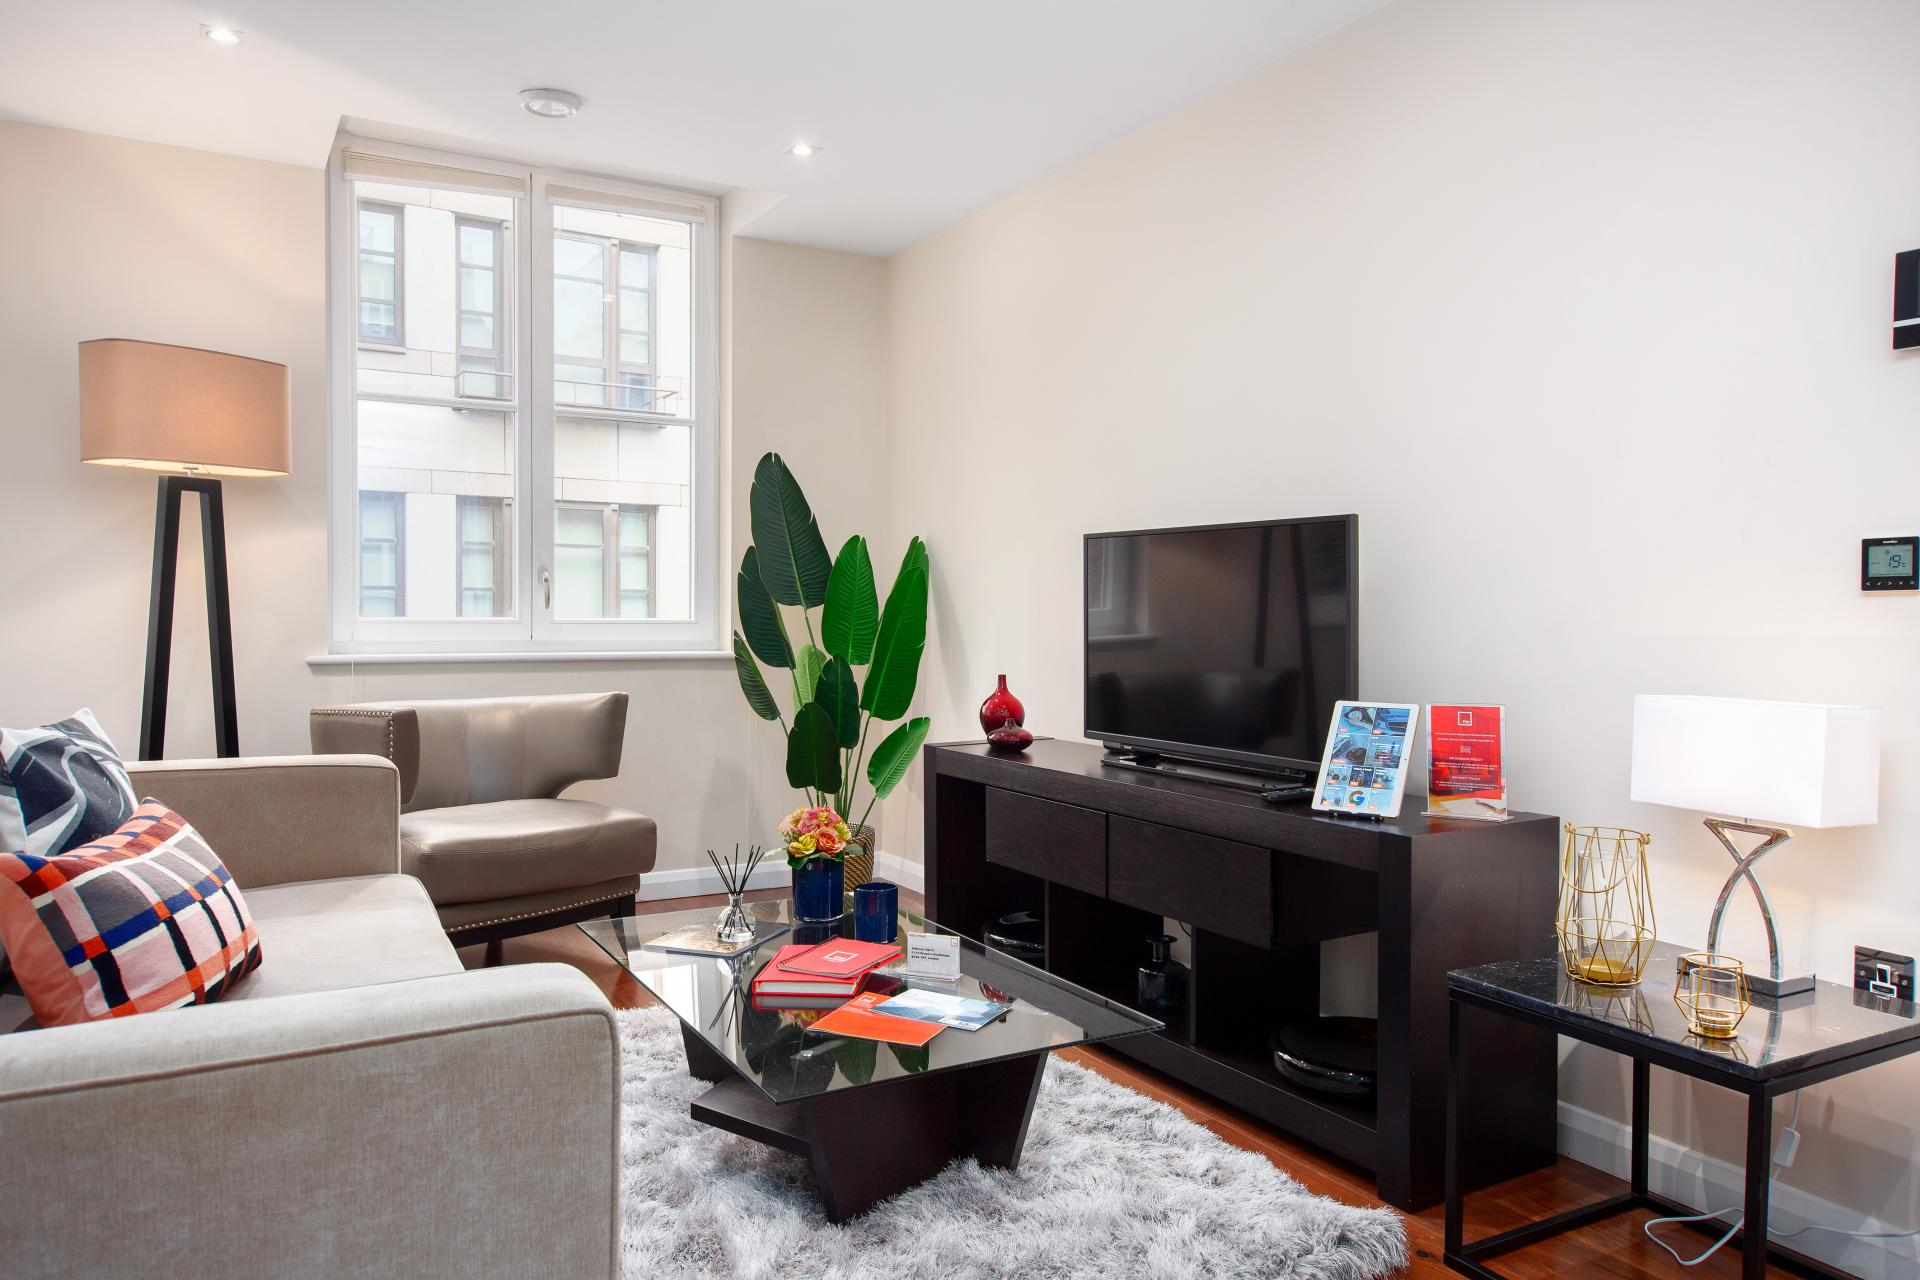 Living Room at Chancery Lane Apartment, Chancery Lane, London - Citybase Apartments